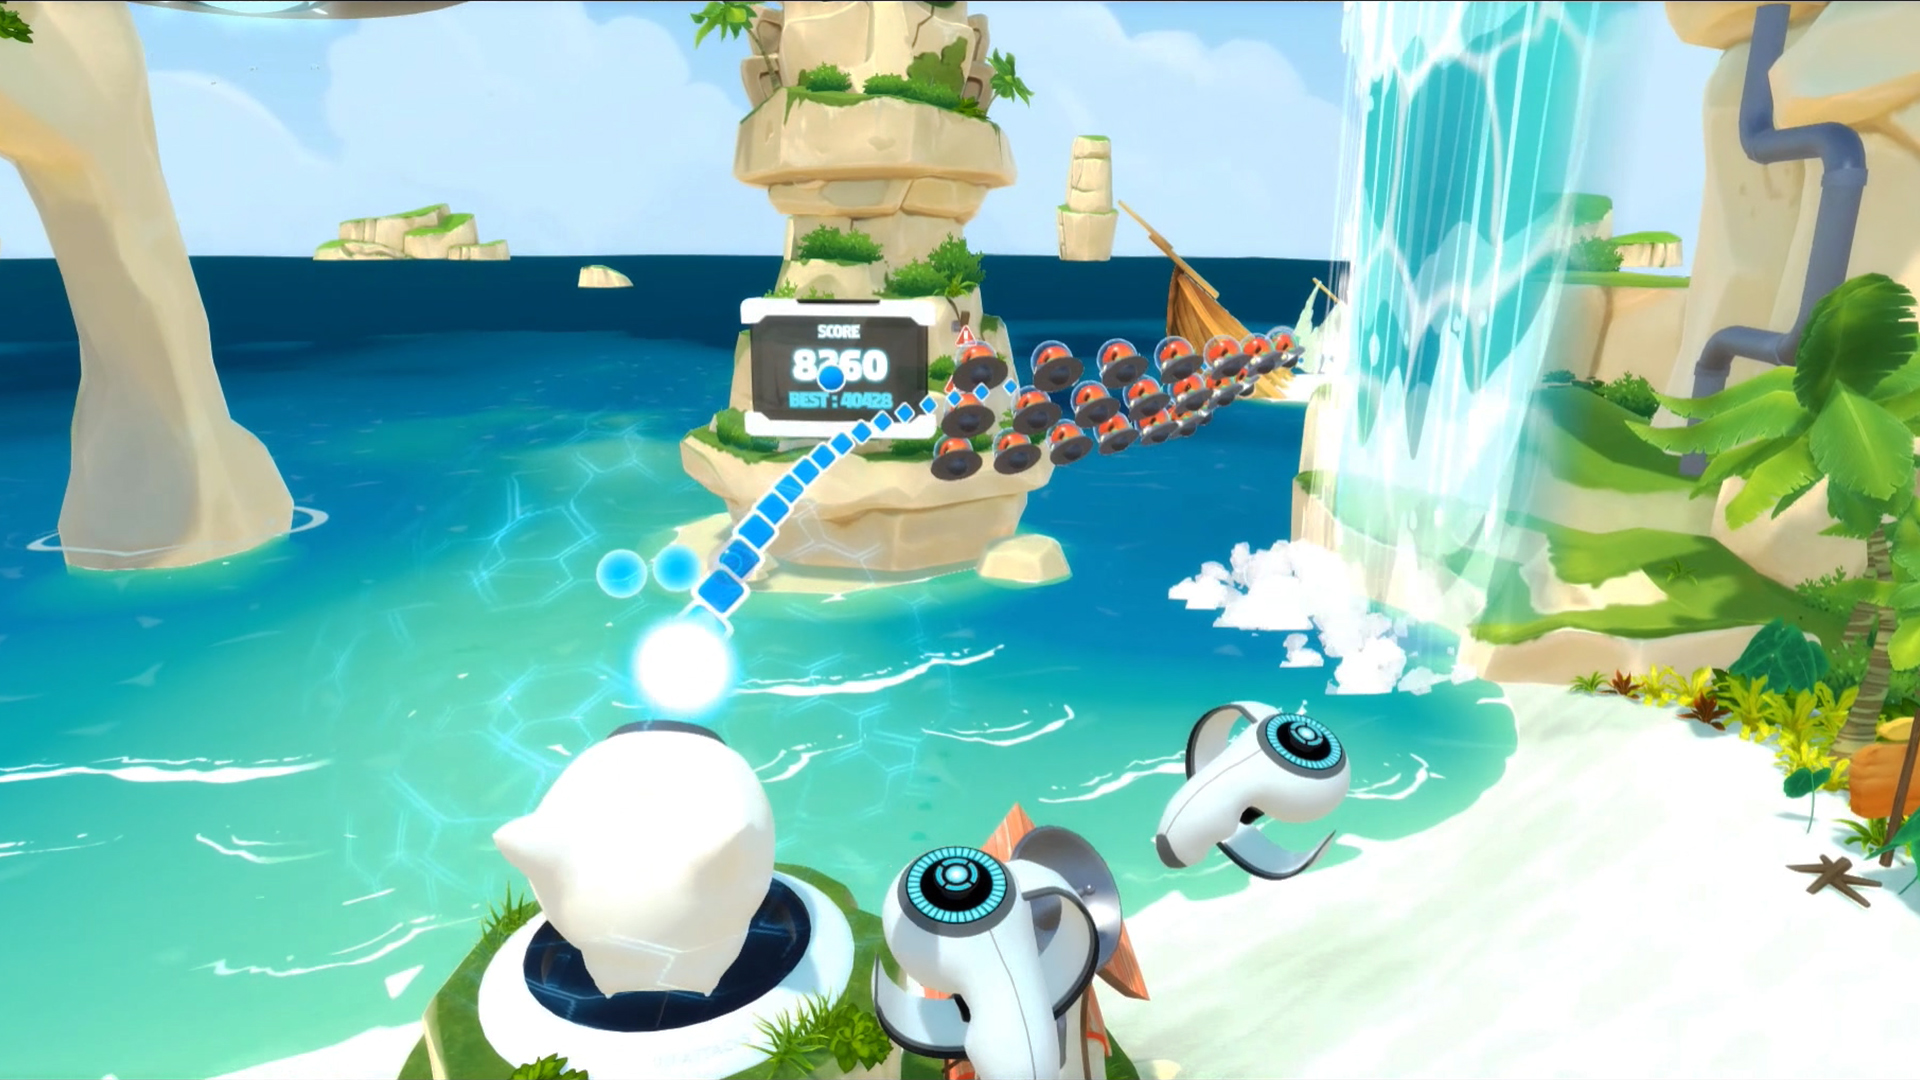 Fruit Attacks VR will enter early access soon